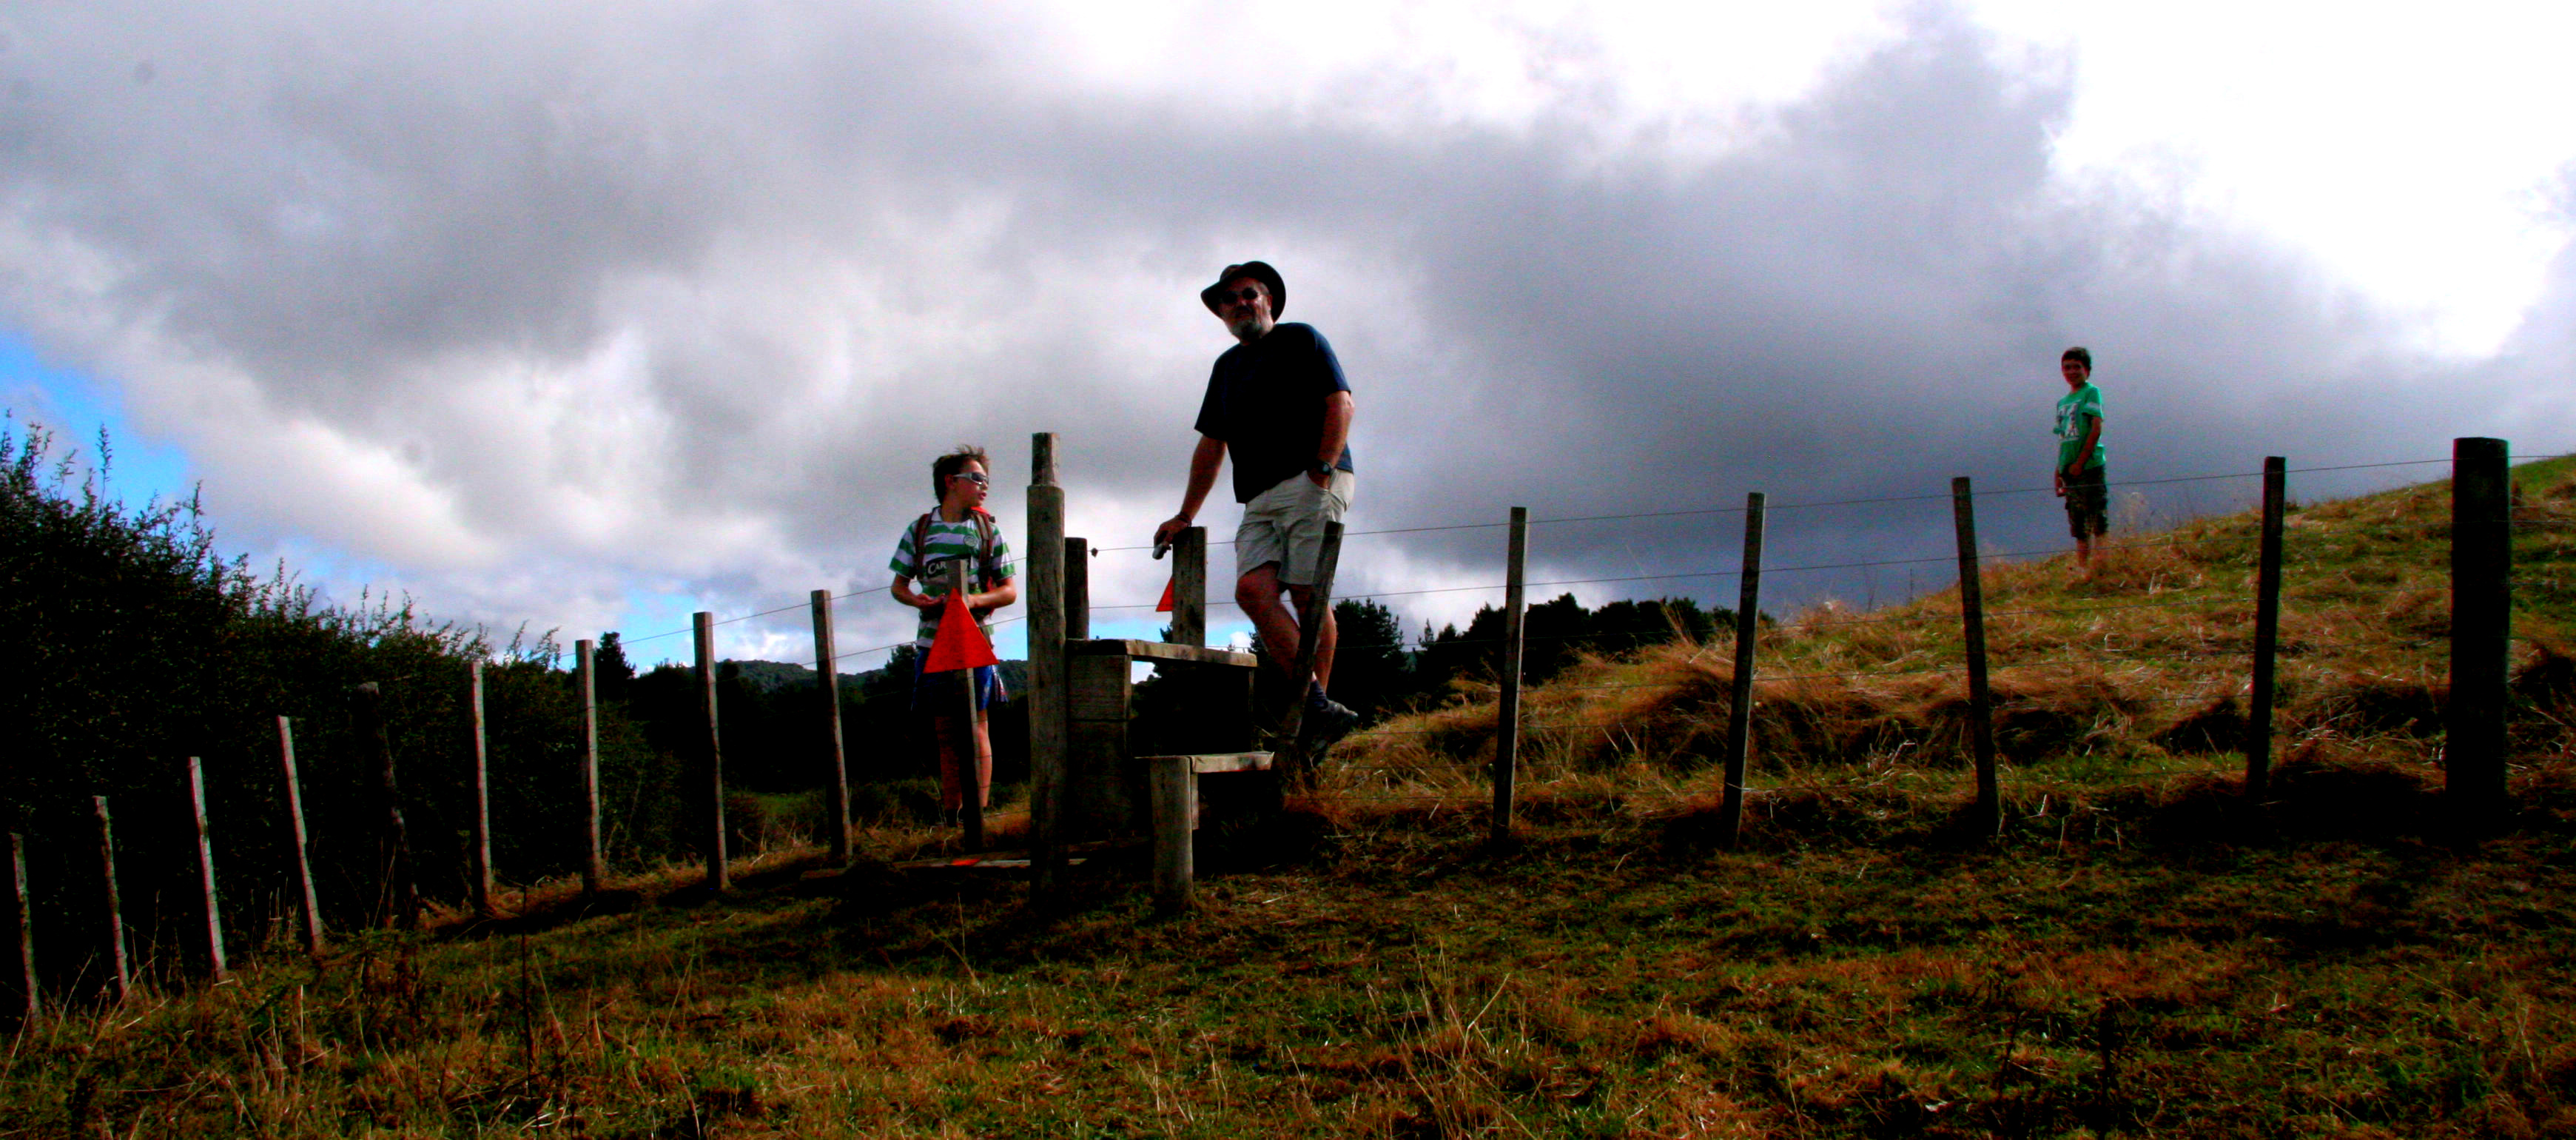 A man and a boy standing by a fence in a paddock on a hillside